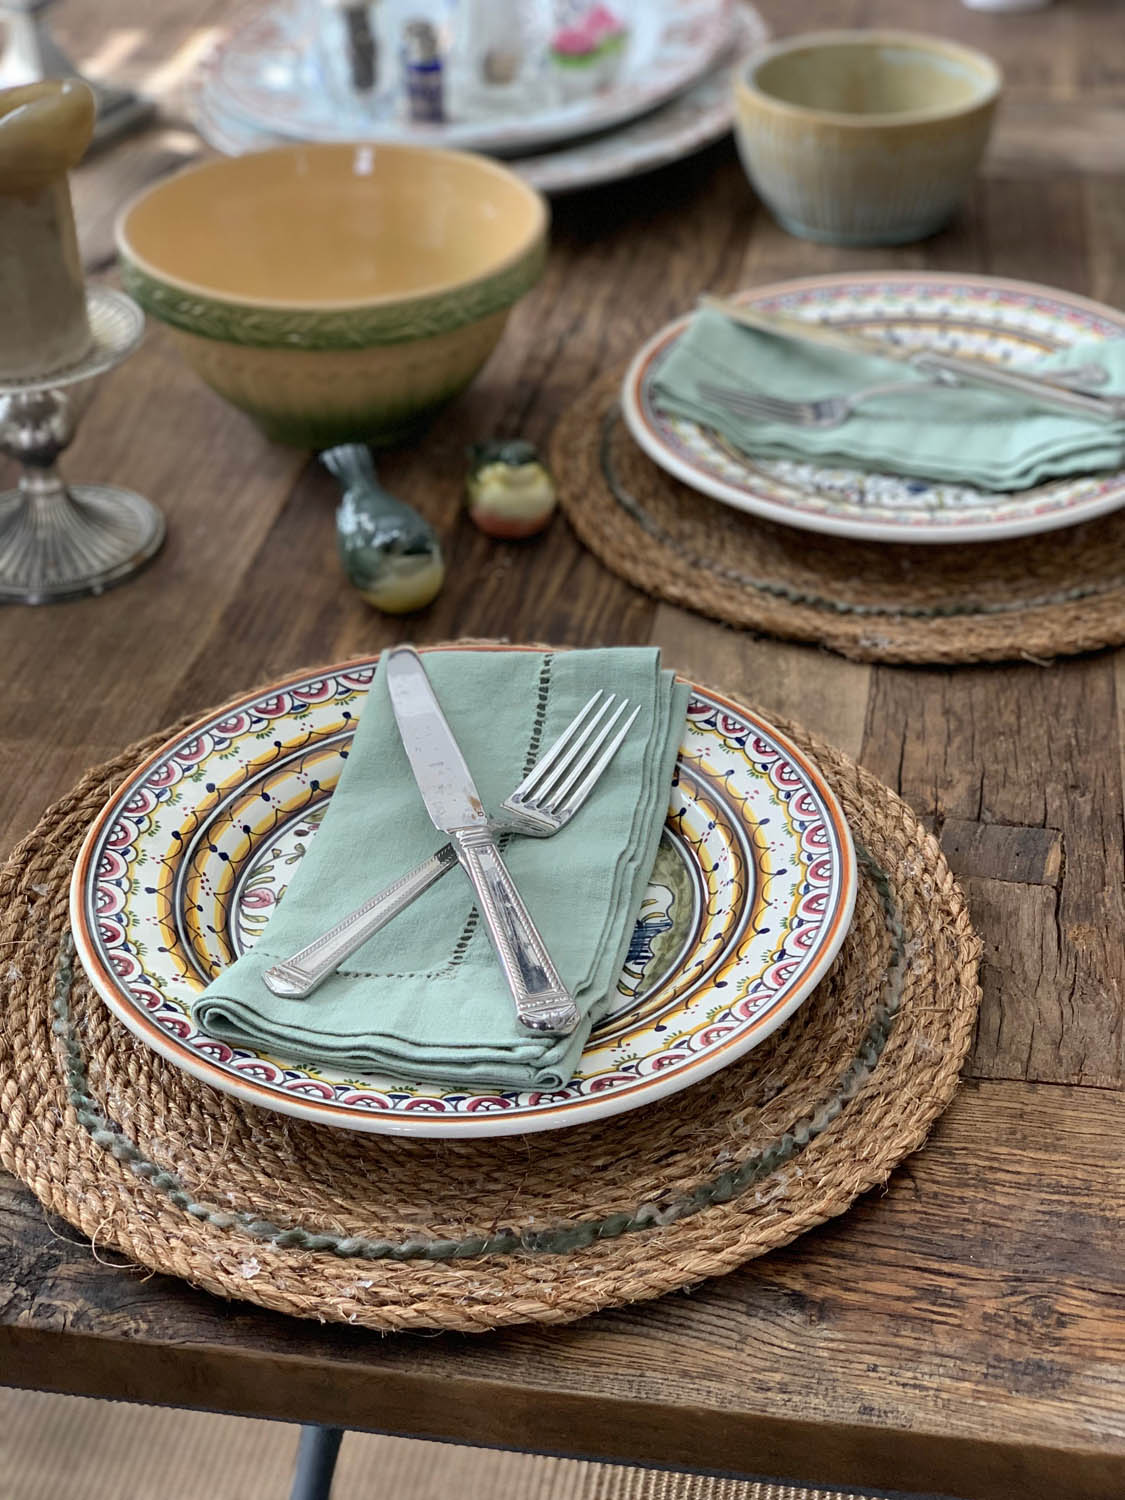 Farmhouse table setting with DIY rustic rope placemats on wood table with pottery, silverware and linen napkins.